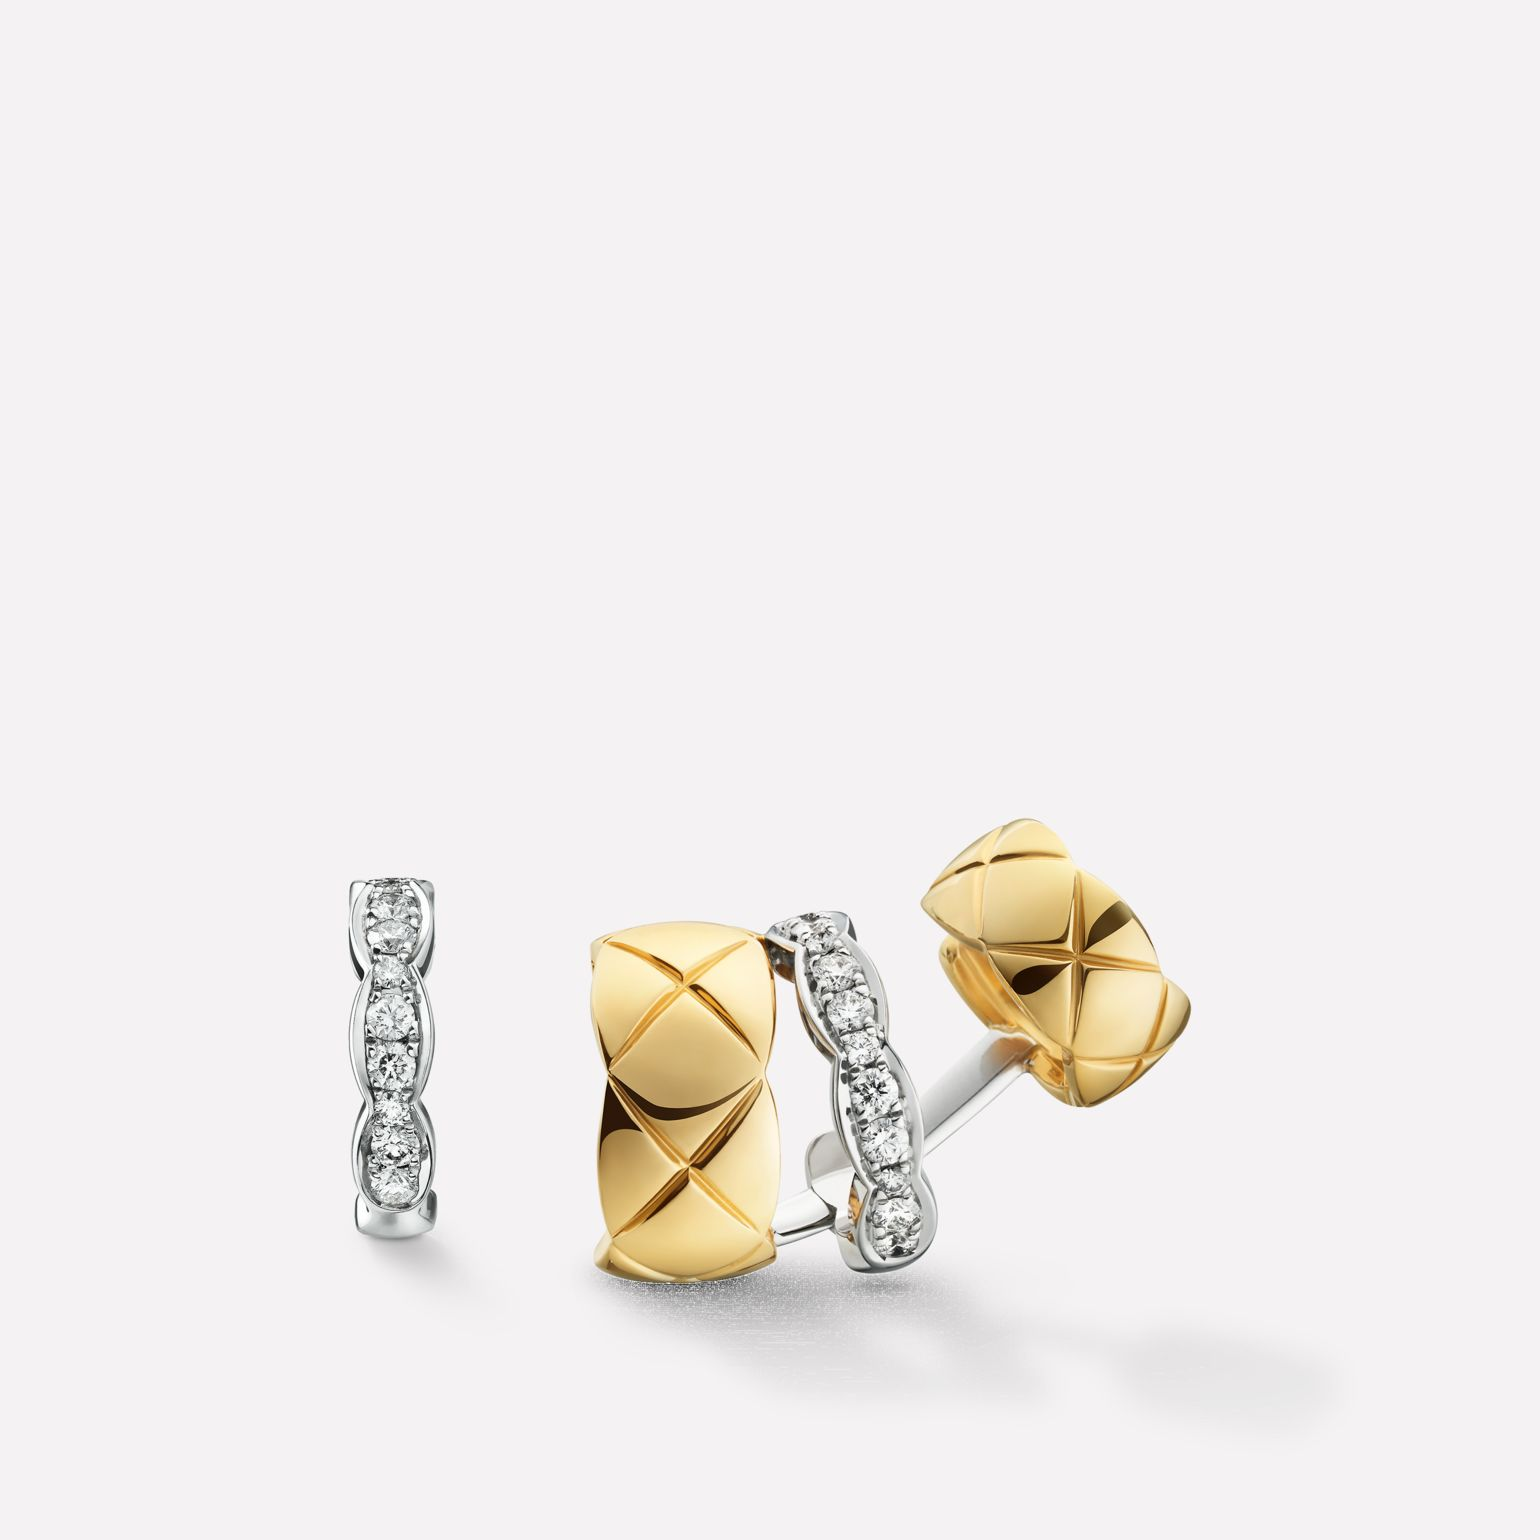 Coco Crush earrings Quilted motif, 18K white and yellow gold, diamonds